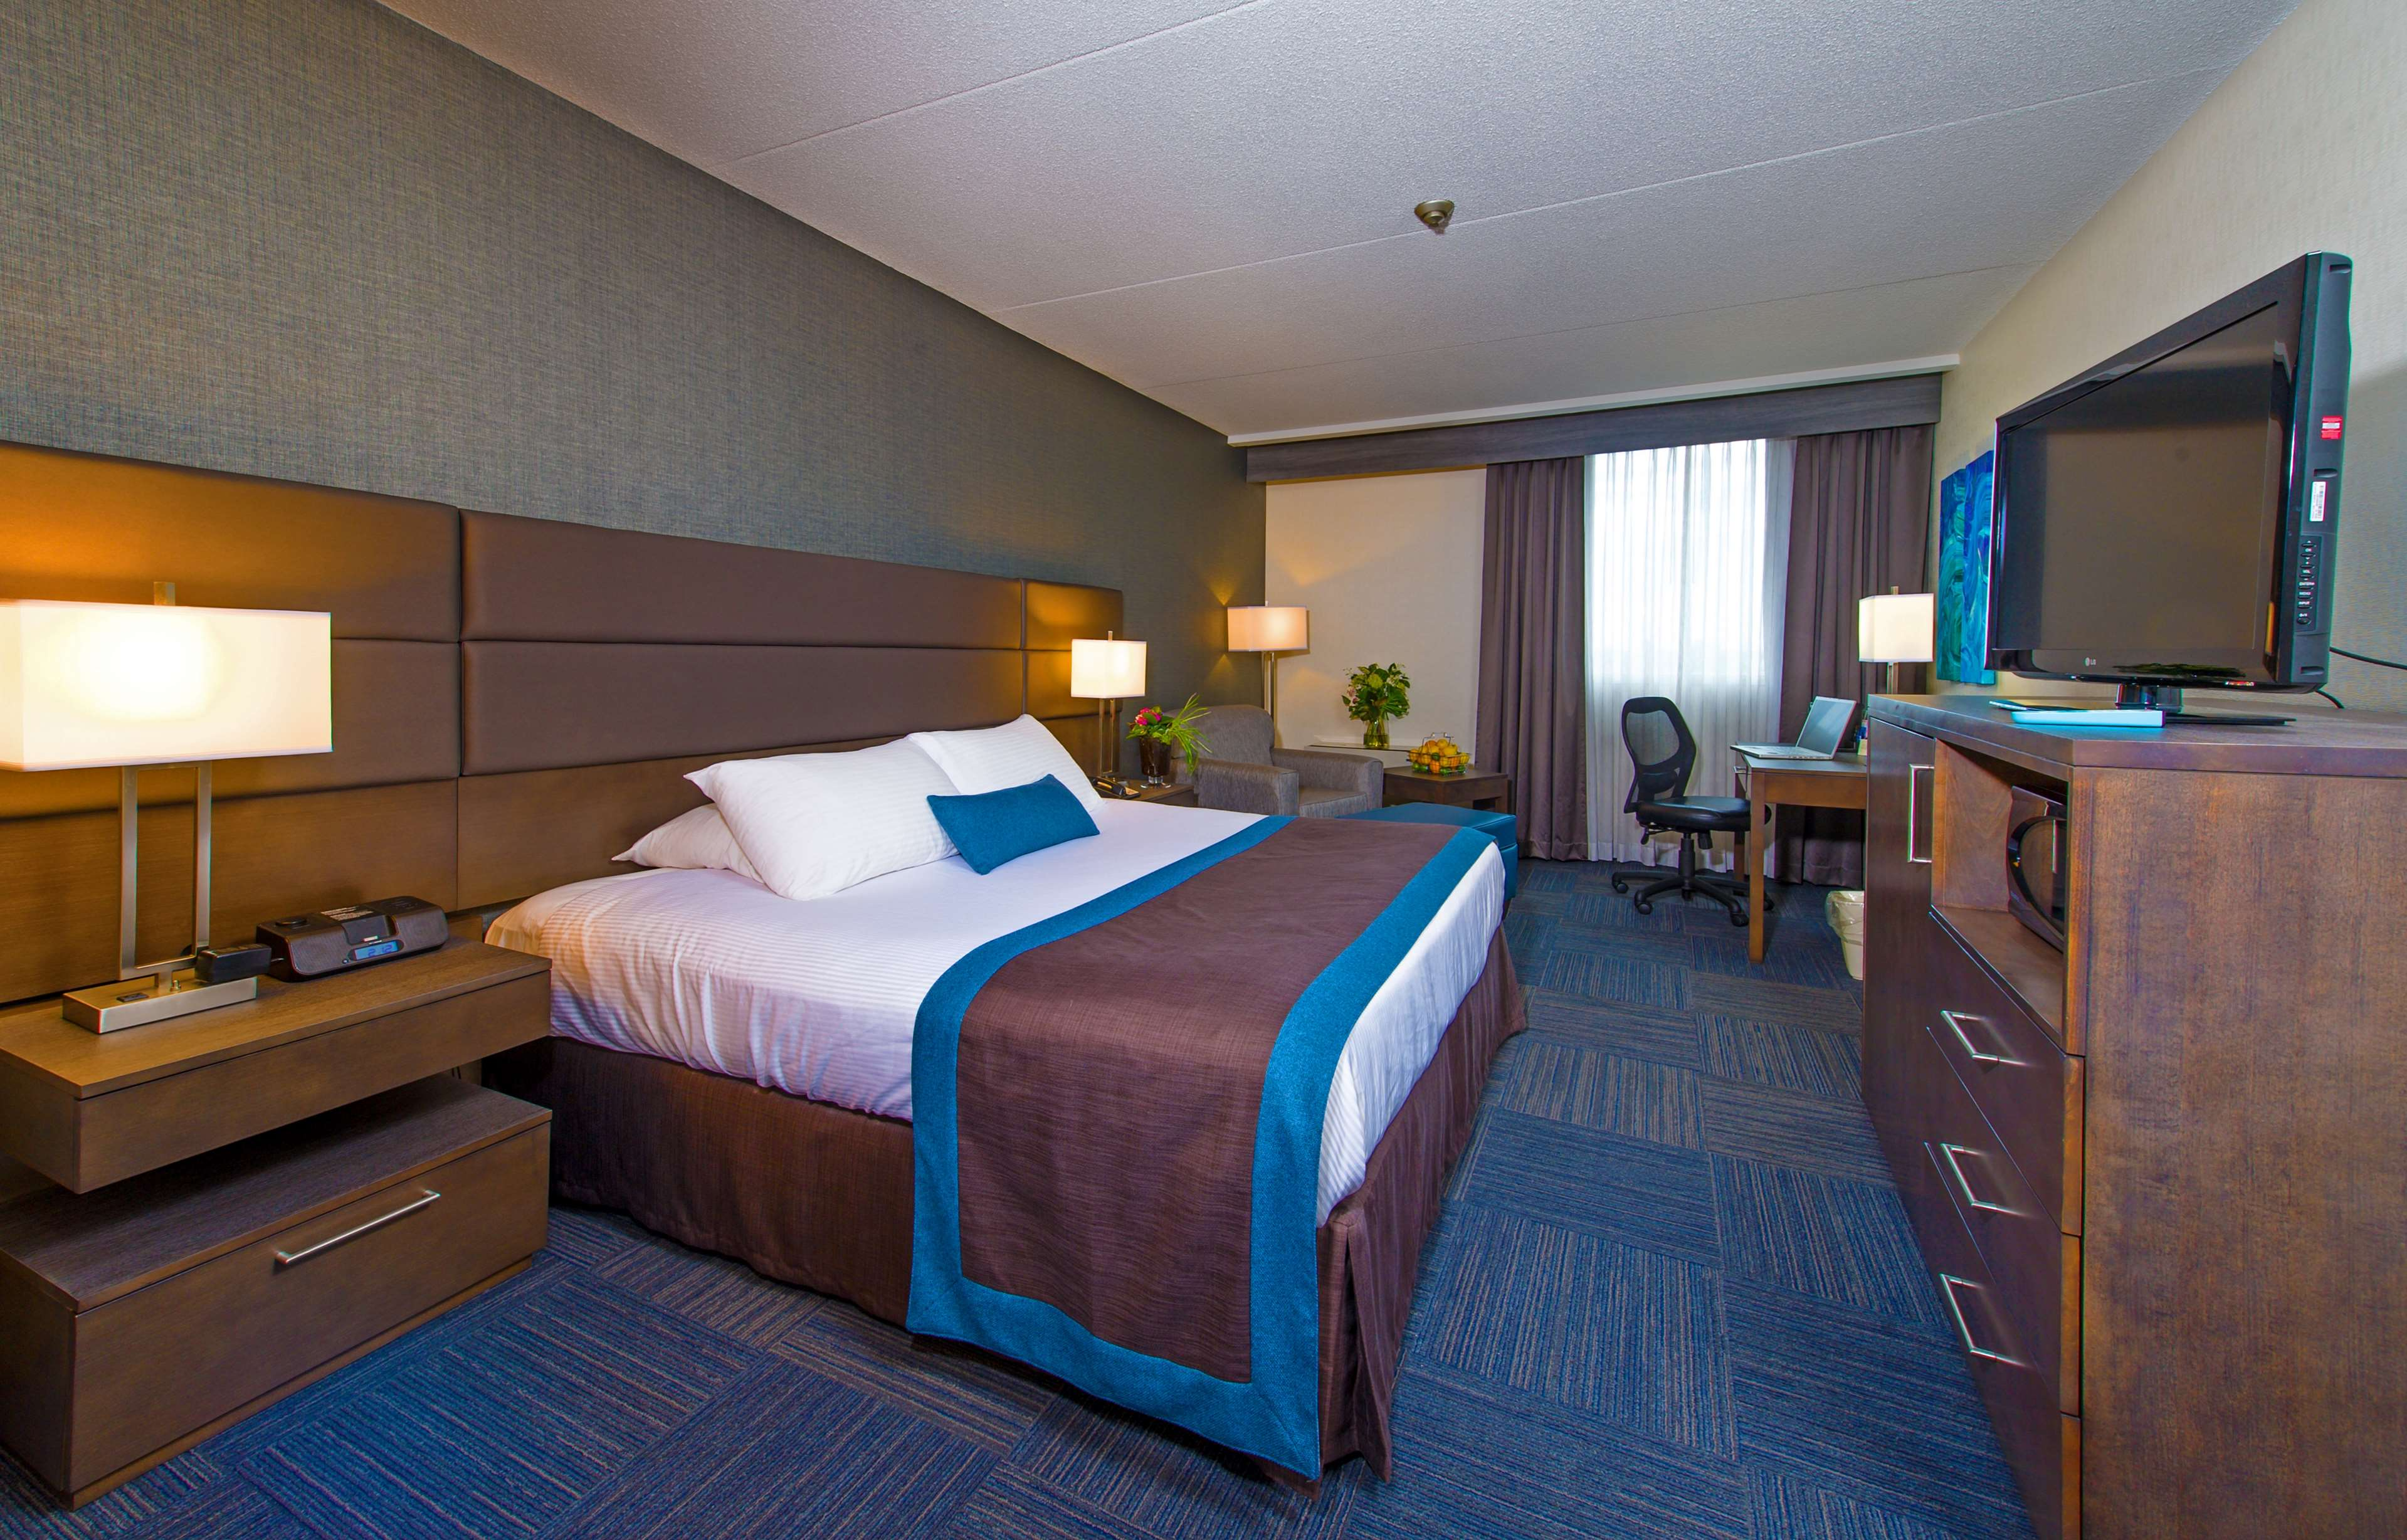 Best western plus toronto airport hotel mississauga on for Best hotel rooms